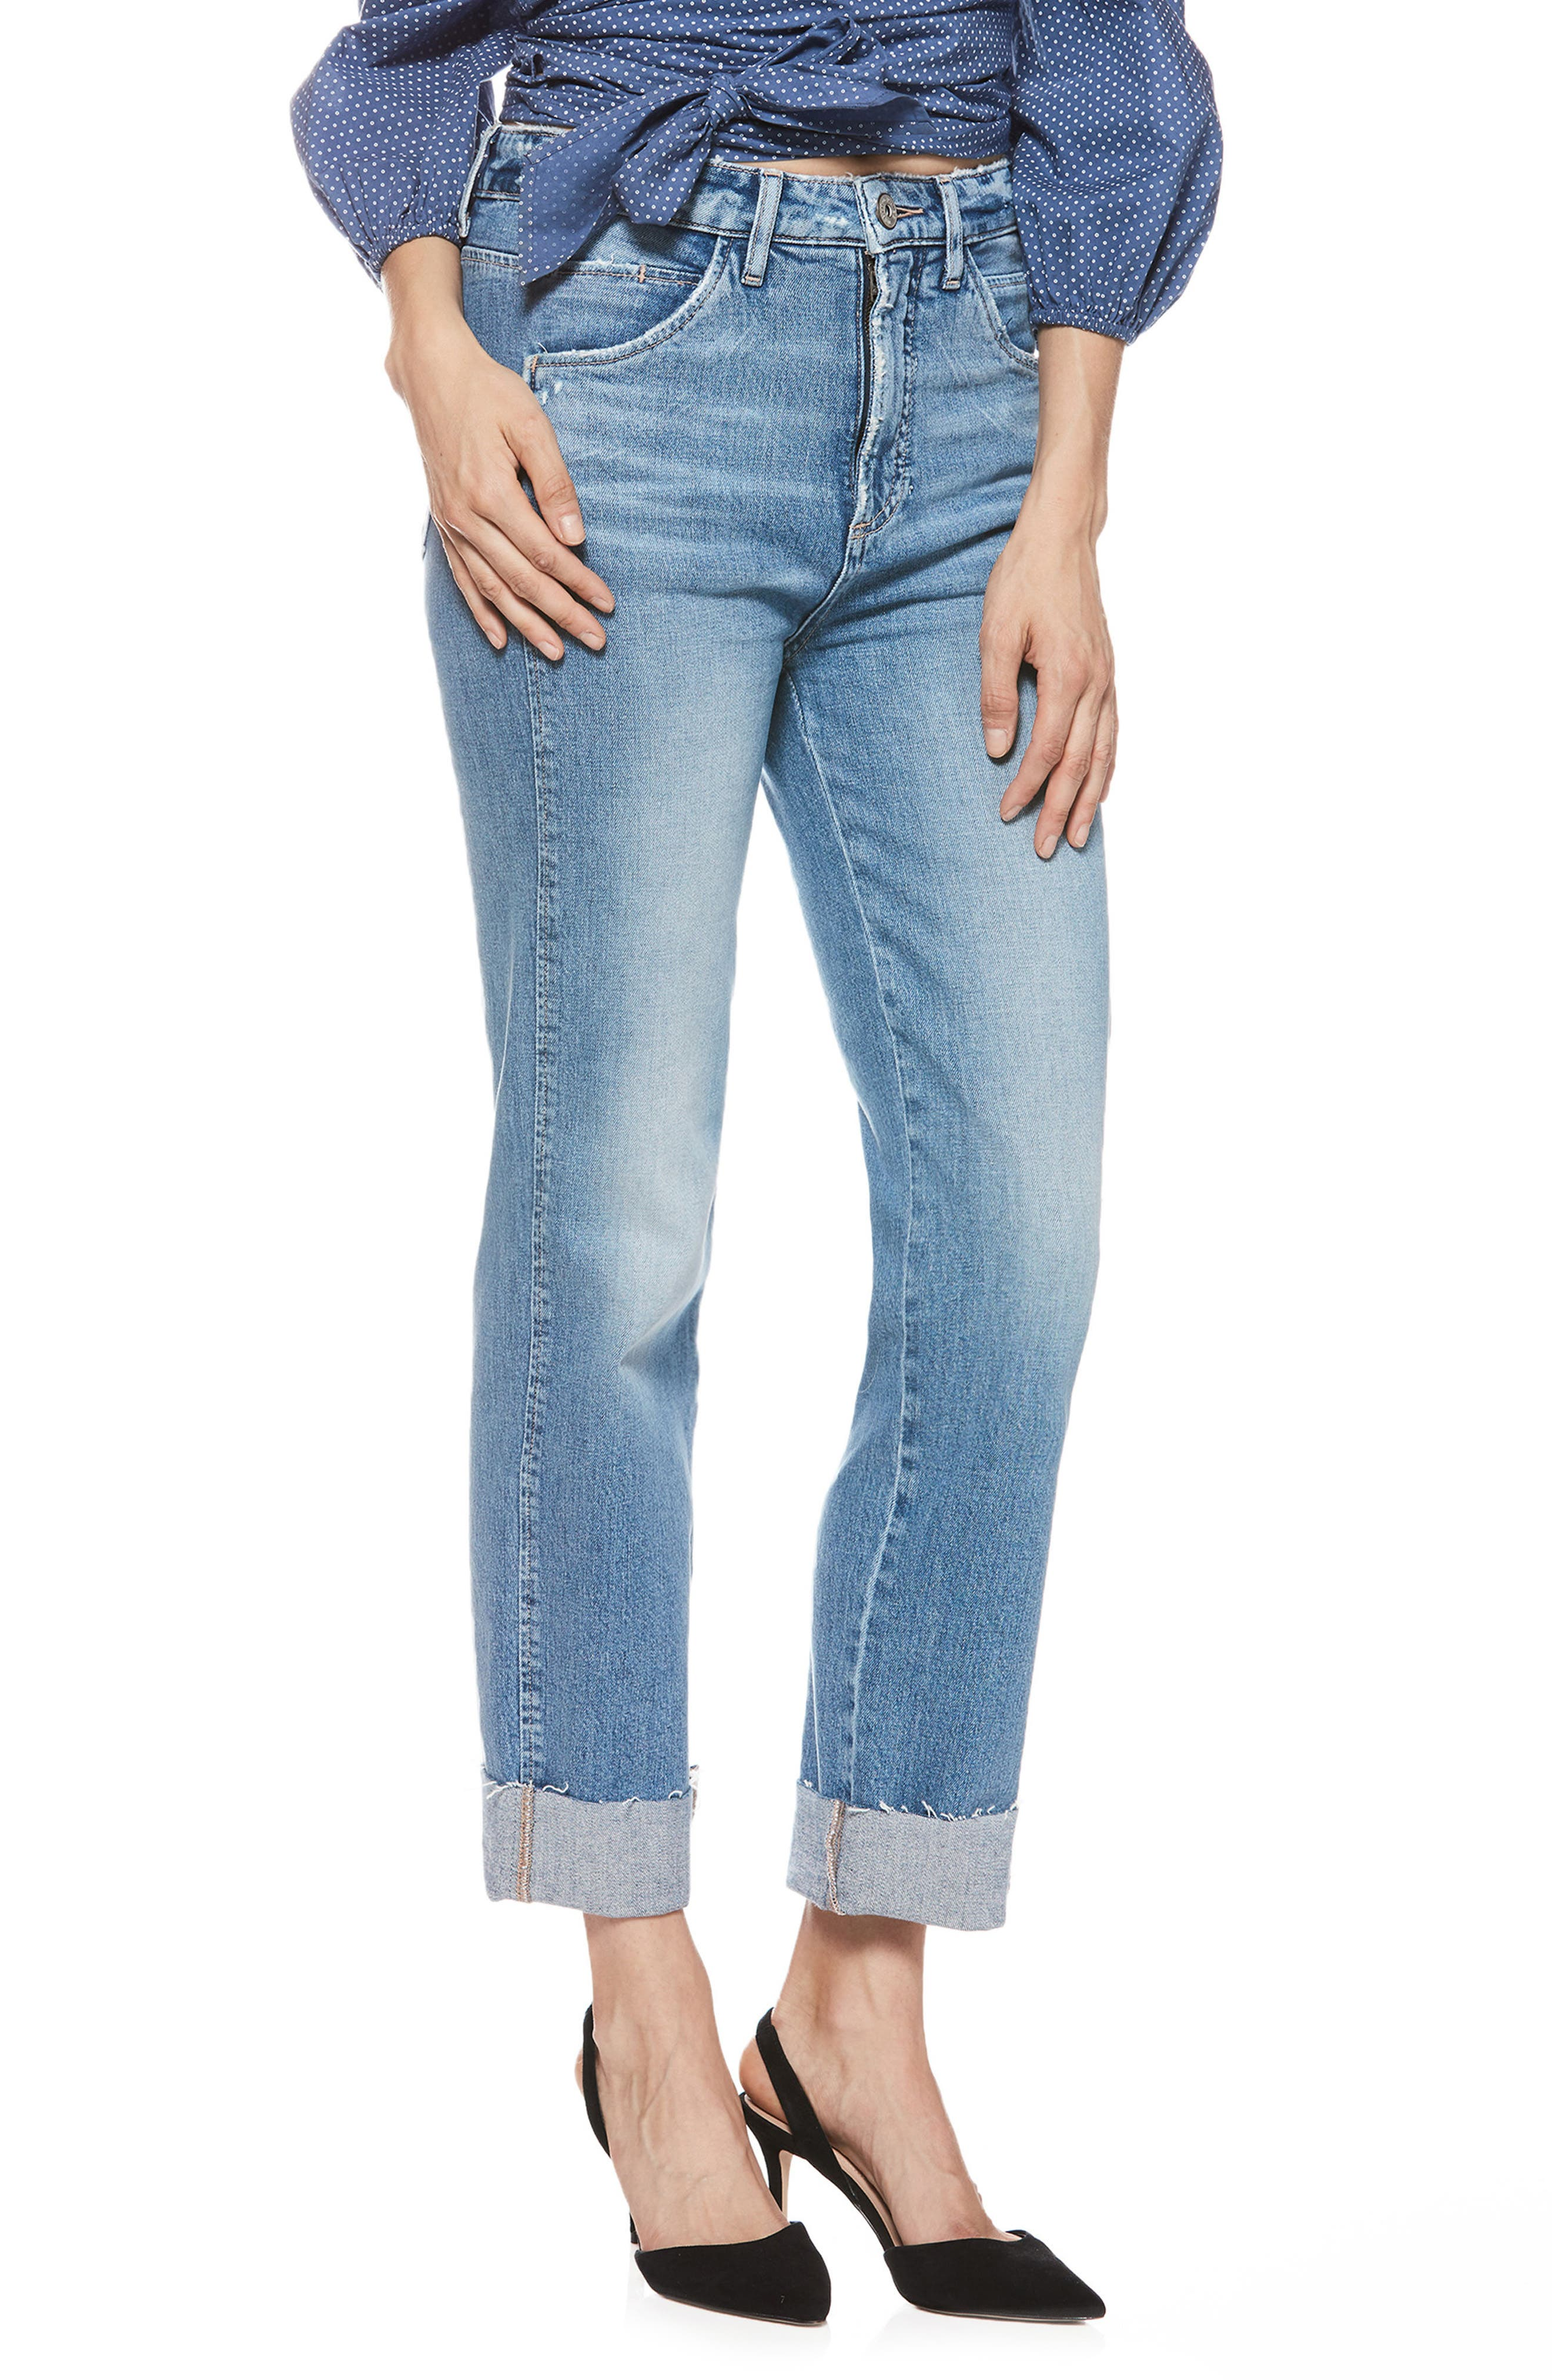 Sarah High Waist Straight Leg Jeans,                             Main thumbnail 1, color,                             400